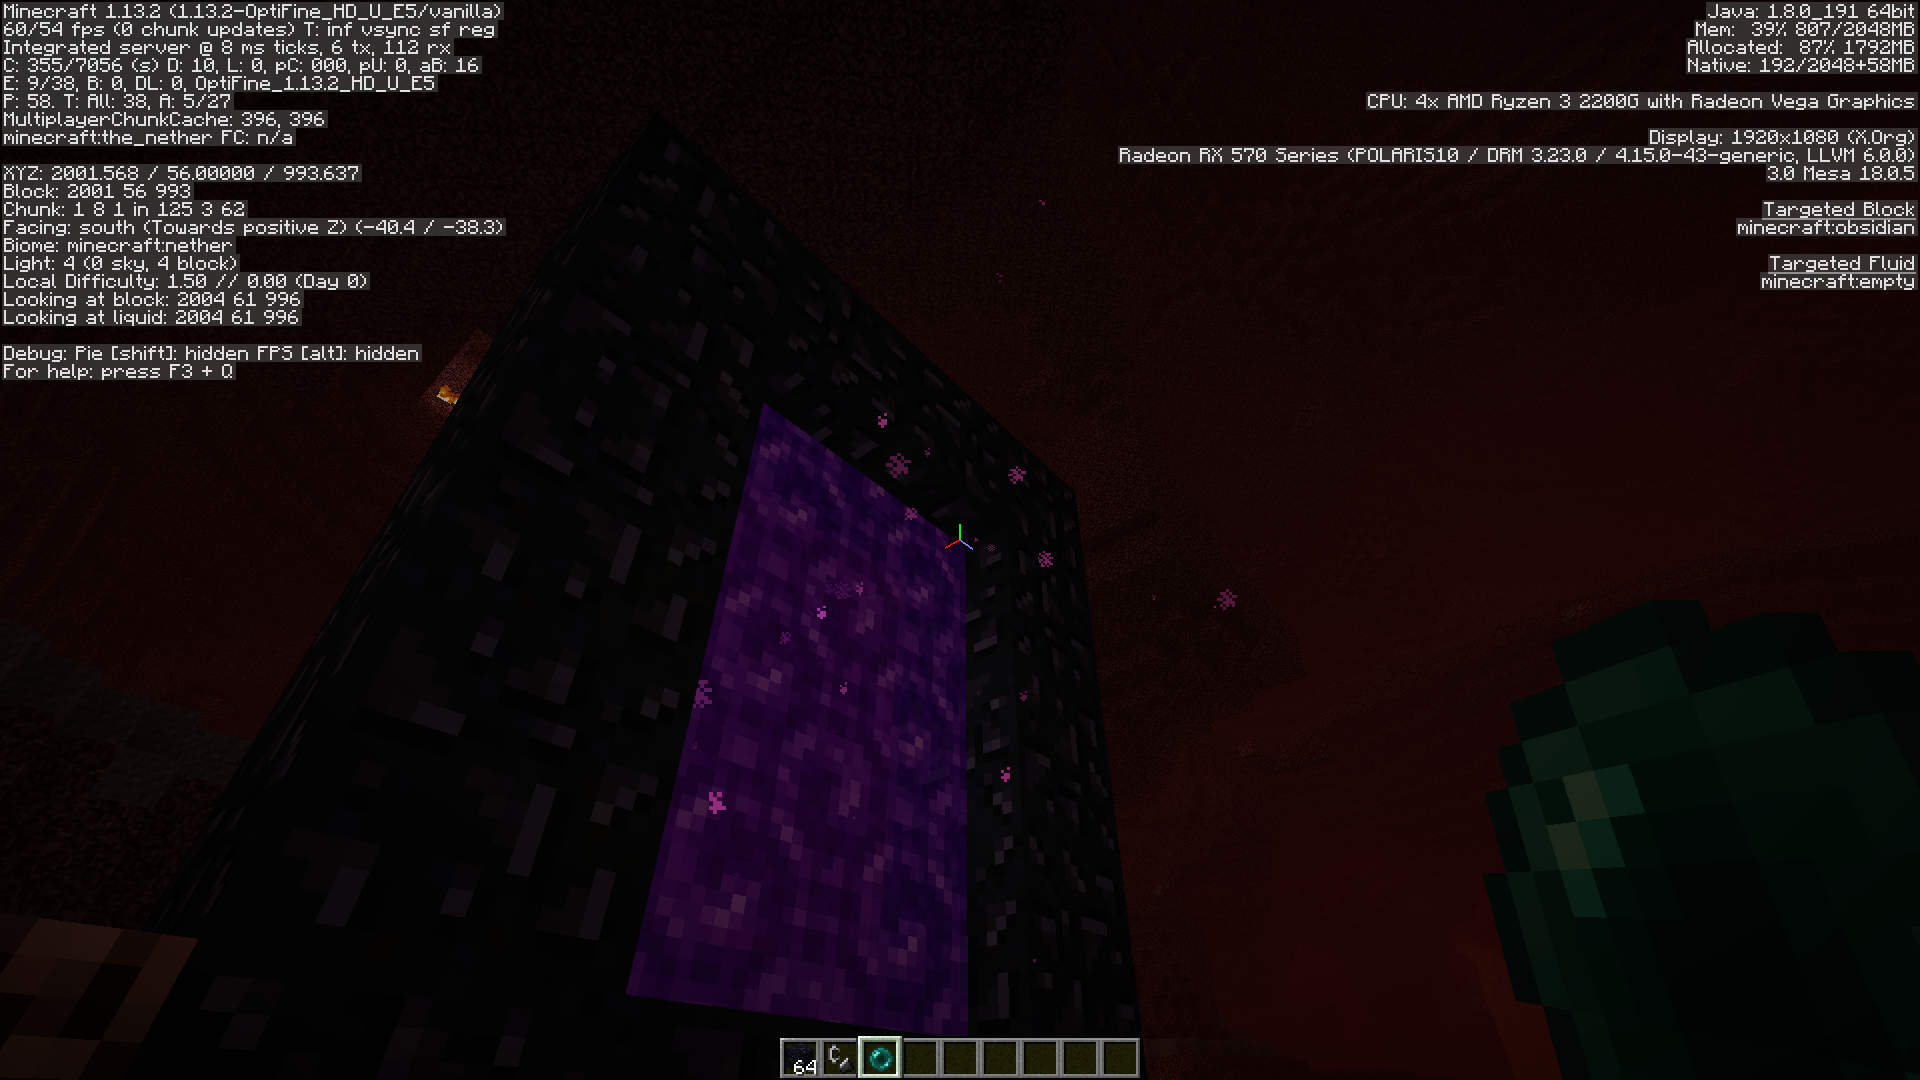 MC-142479] Throwing an ender Pearl in a nether portal sometimes